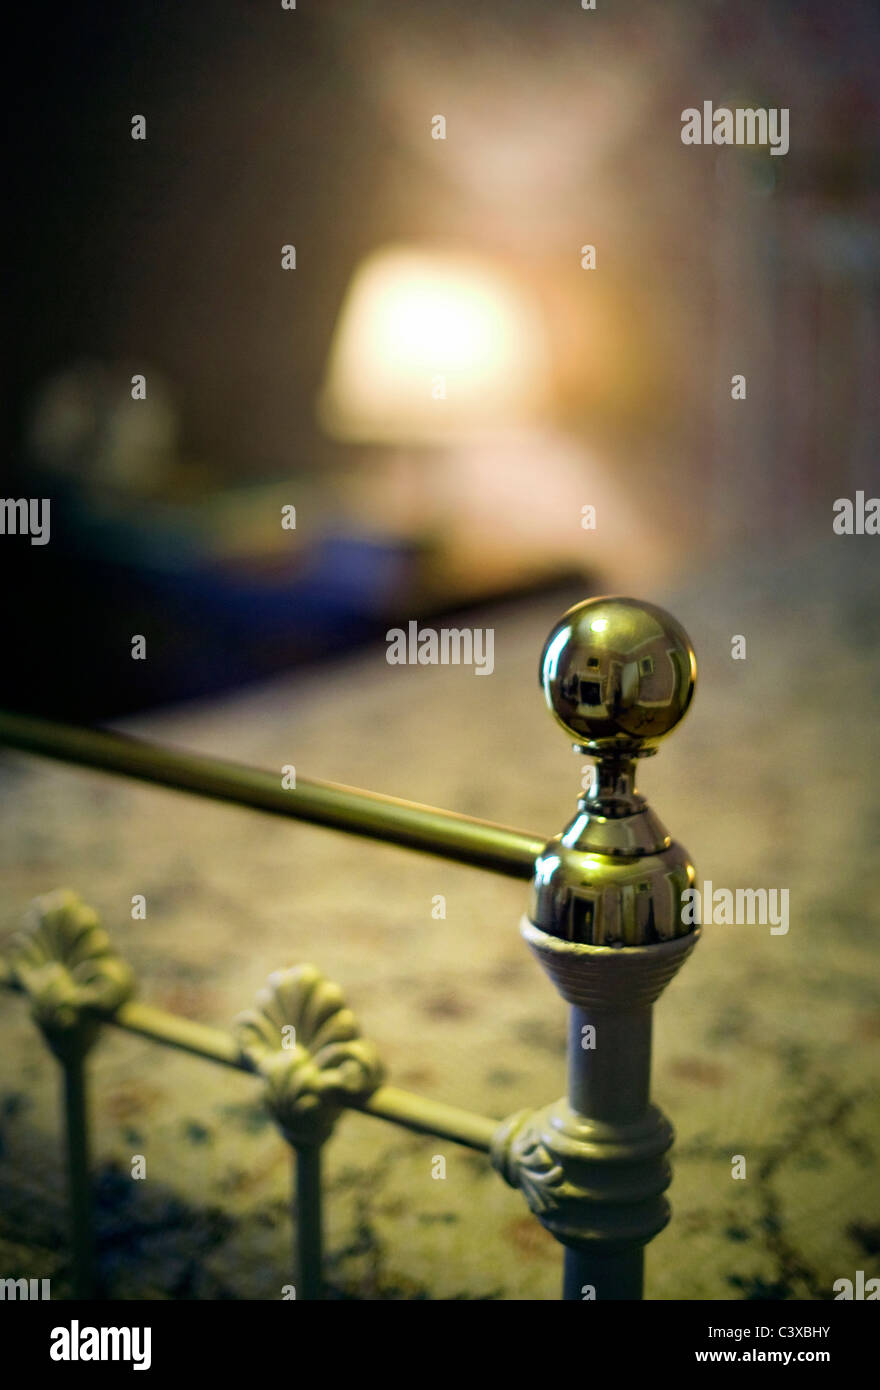 brass bedstead and table lamp - Stock Image